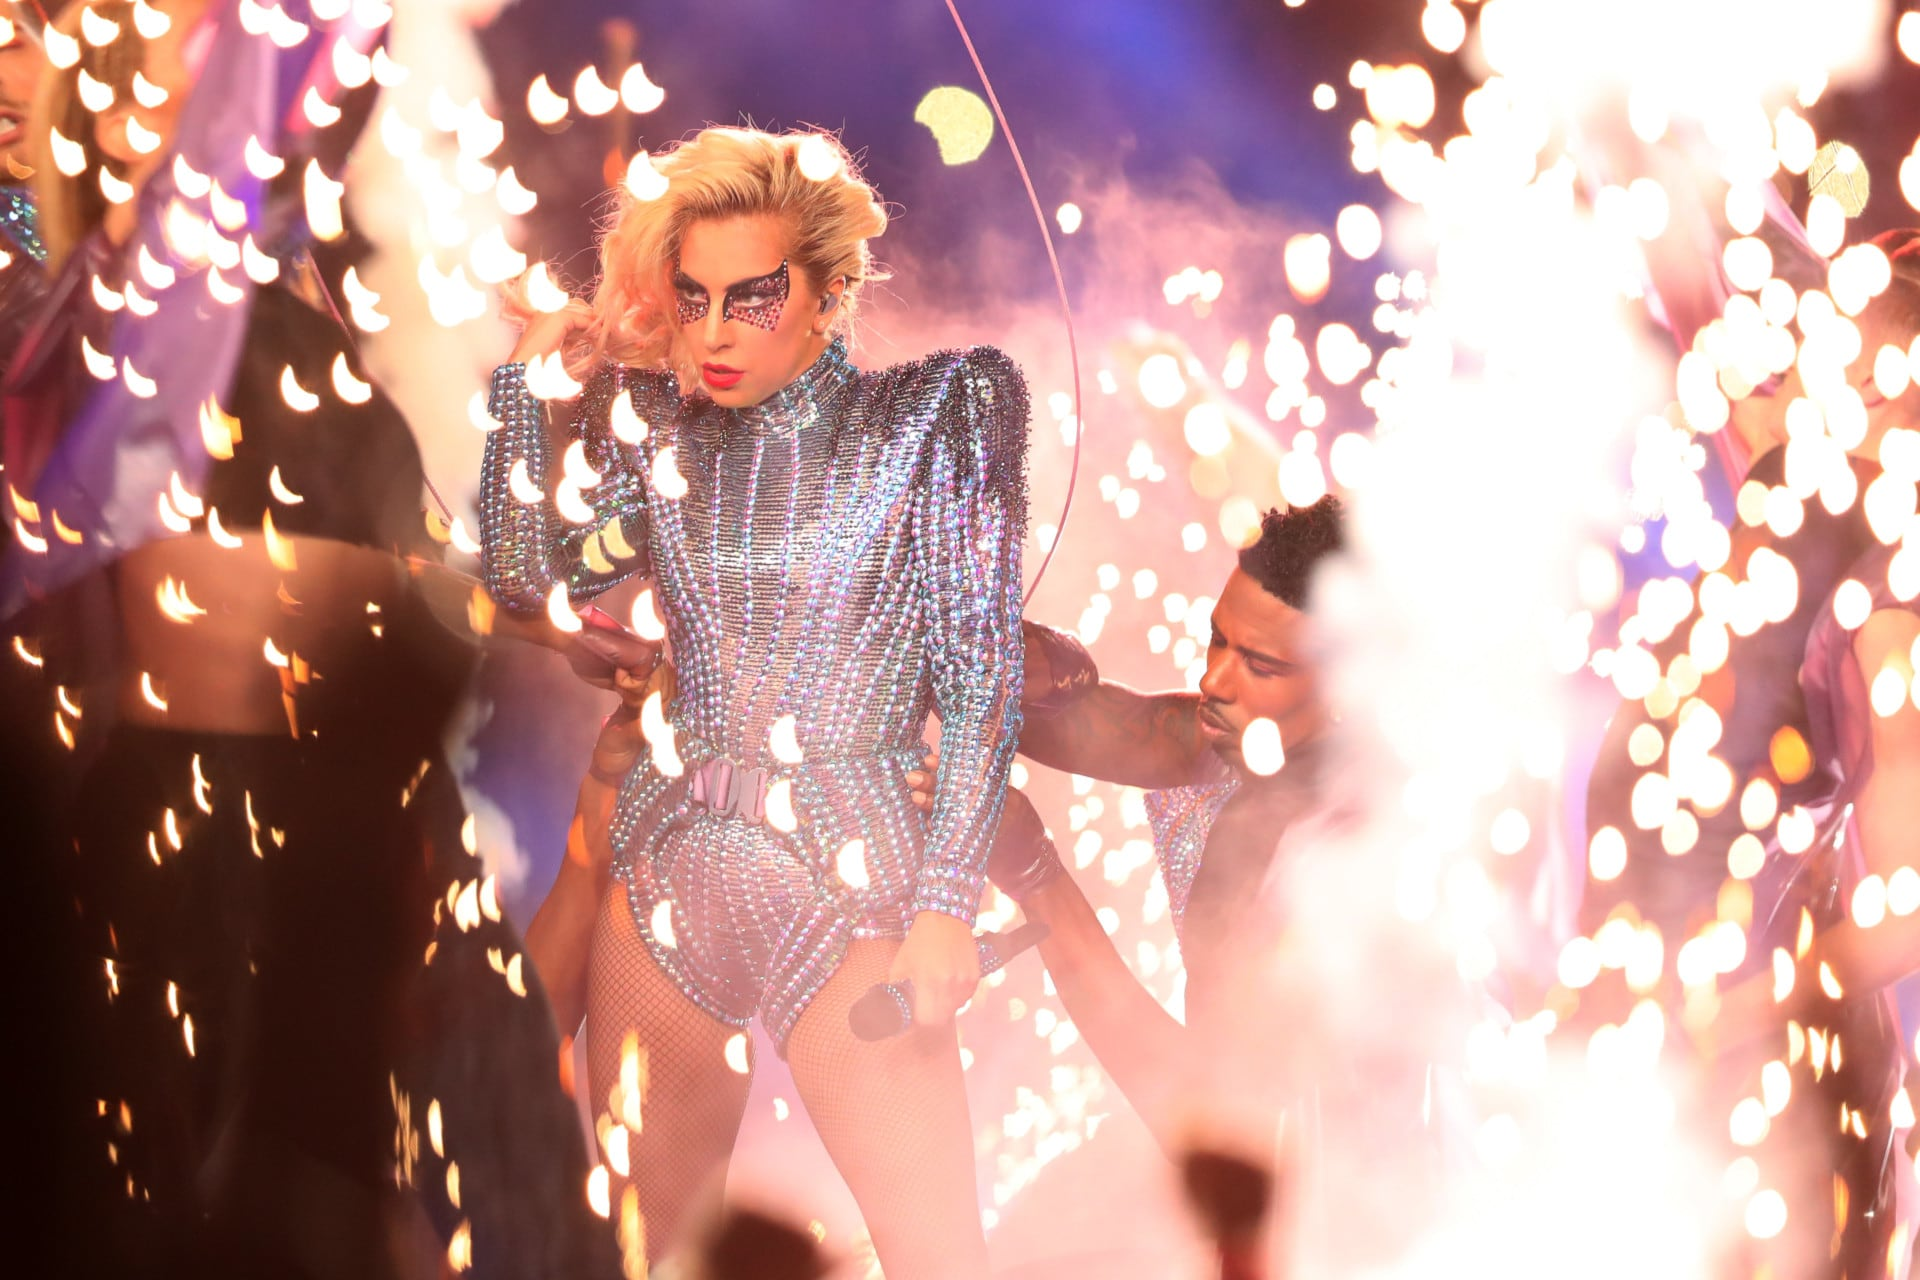 Super Bowl 2017 Halftime Show Lady Gaga Proves She Is The Queen Of Make Up Quick Change